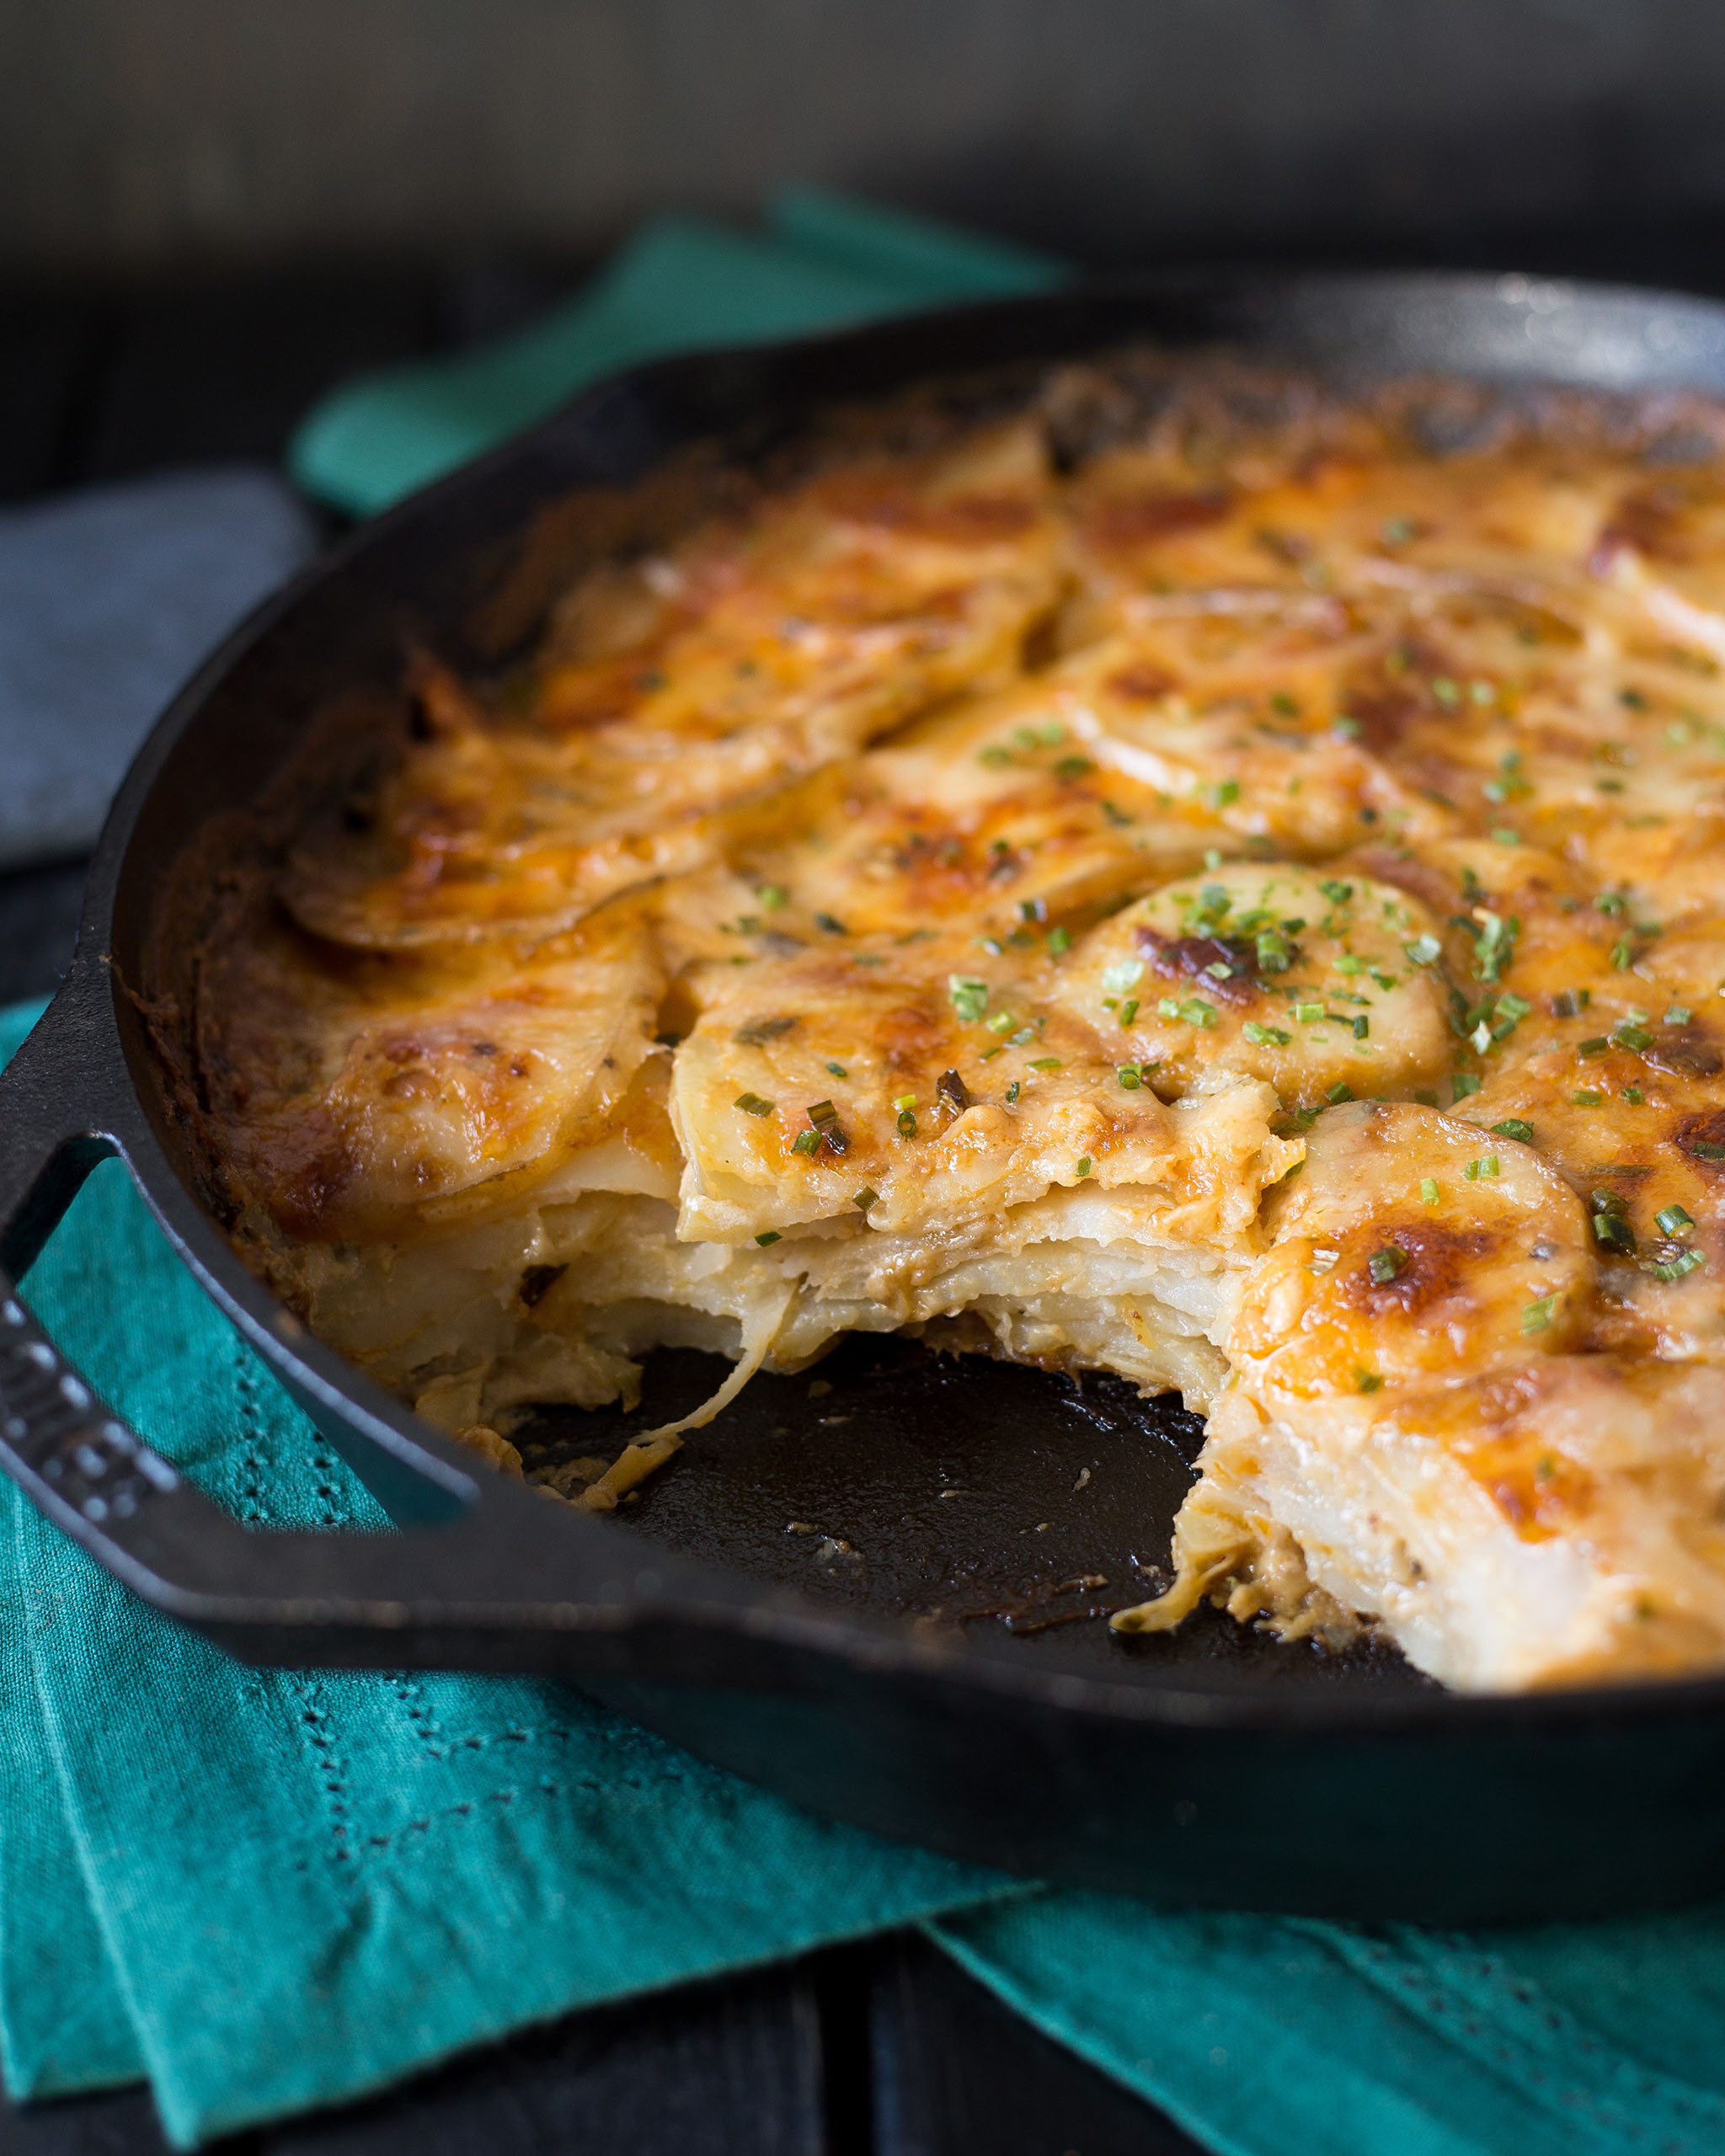 A photo of a completed pan of our cheesy scalloped potatoes recipe